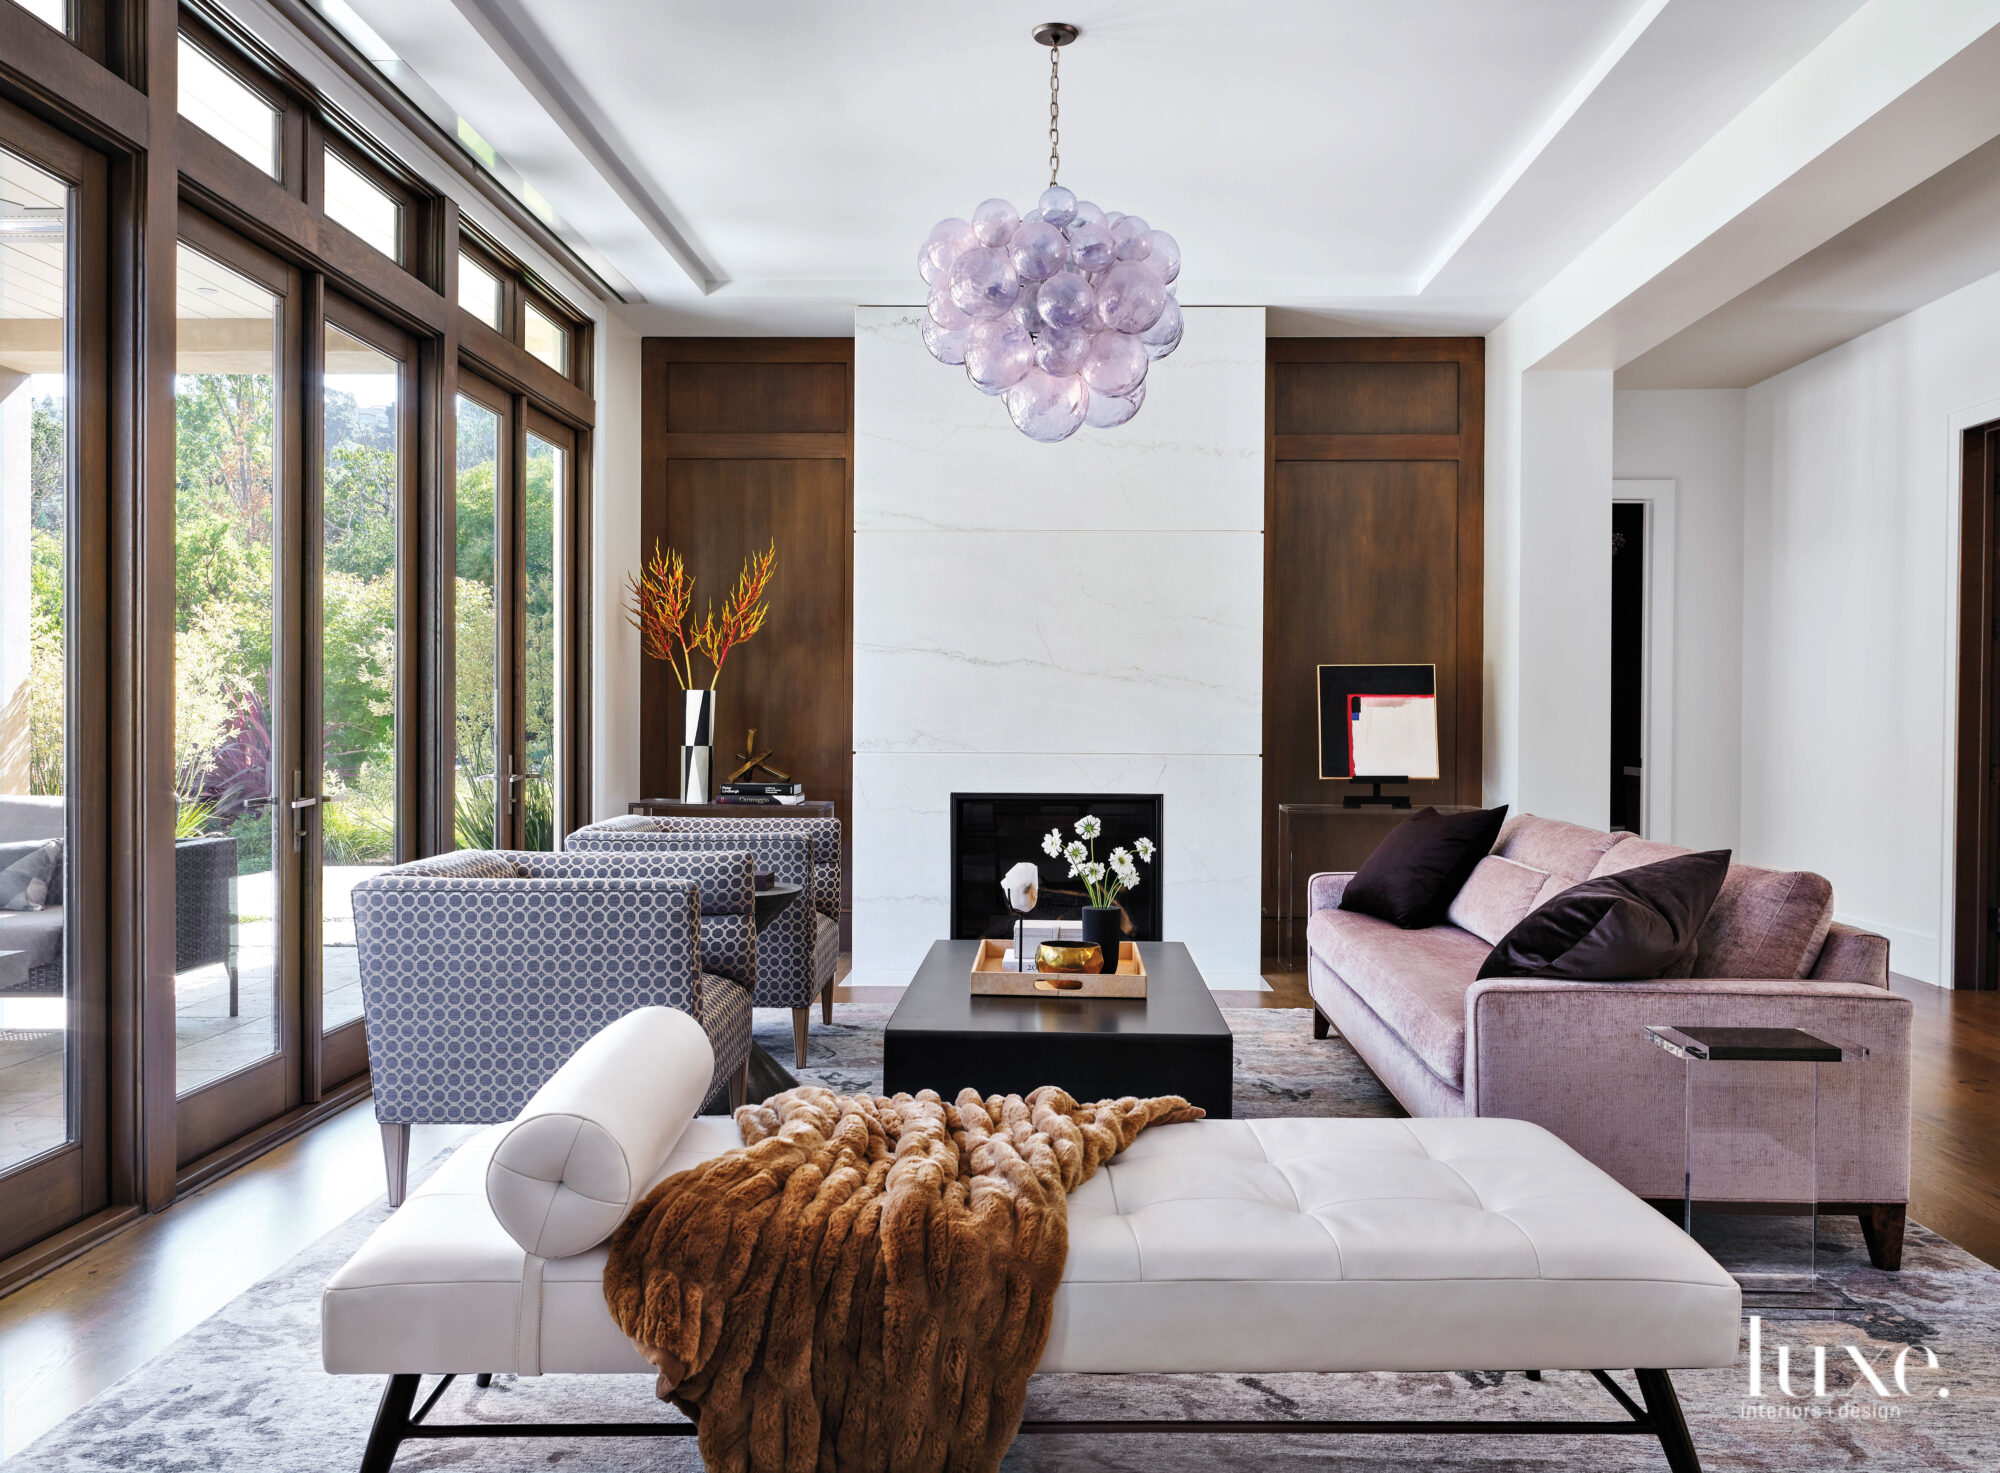 A rose colored sofa and chairs and a creamy chaise gather around a fireplace.